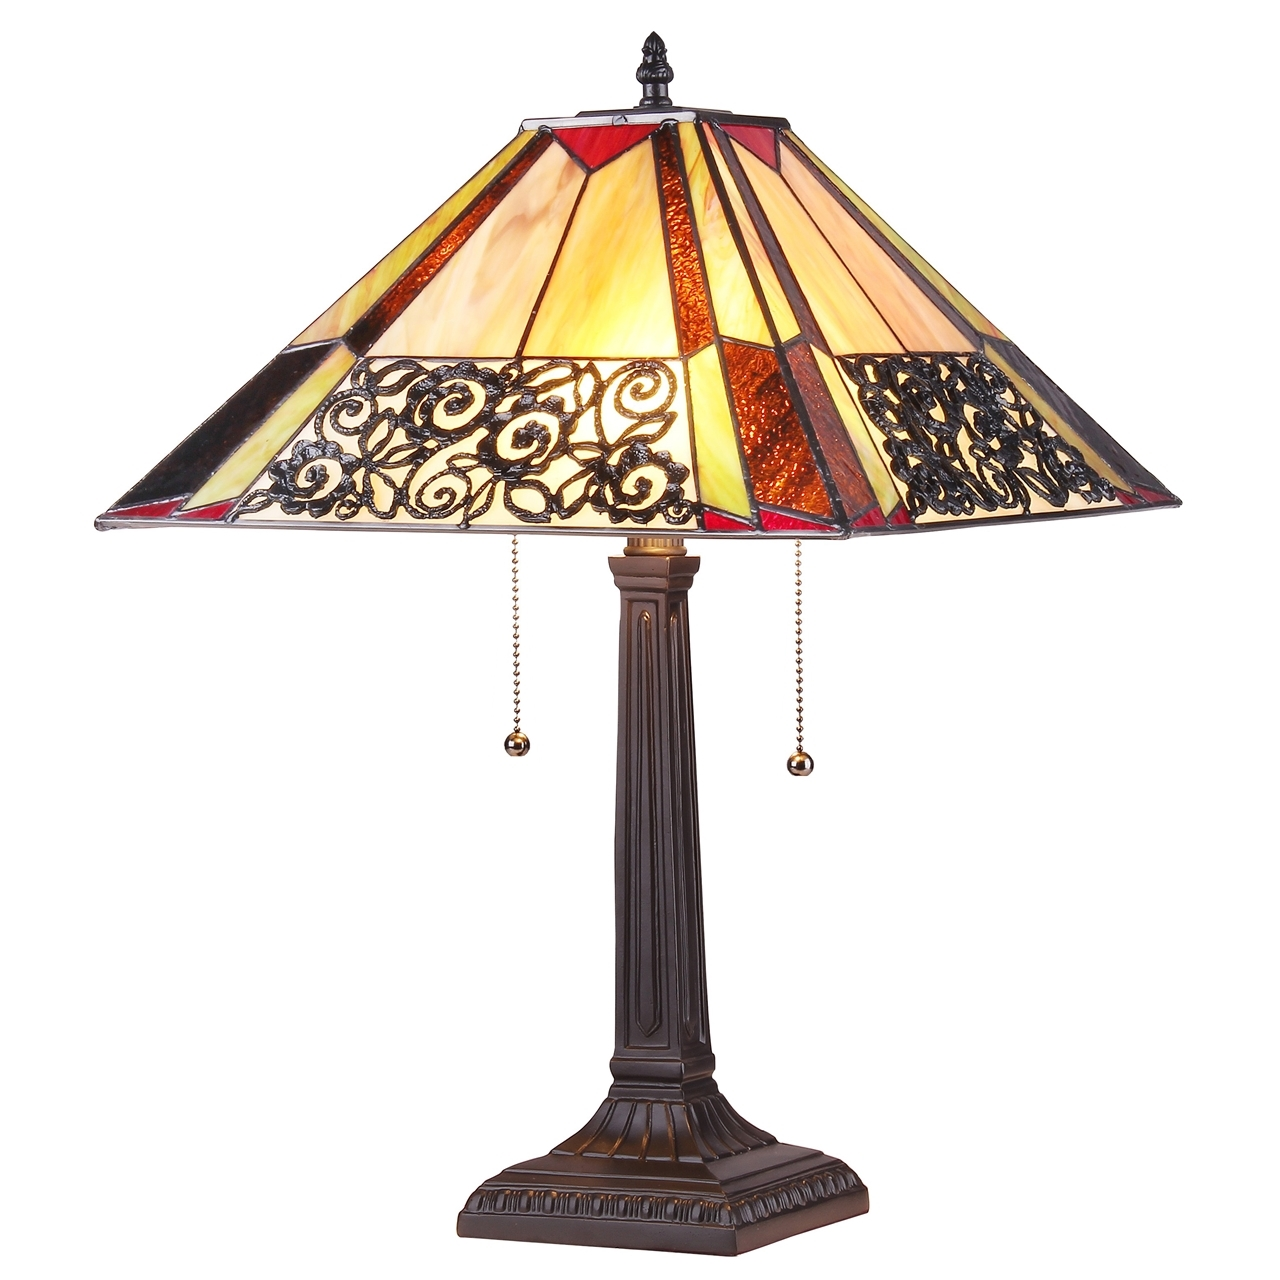 Chloe lighting inc tiffany lamp tiffany lamps tiffany style chloe lighting evelyn tiffany style 2 light mission table lamp geotapseo Choice Image